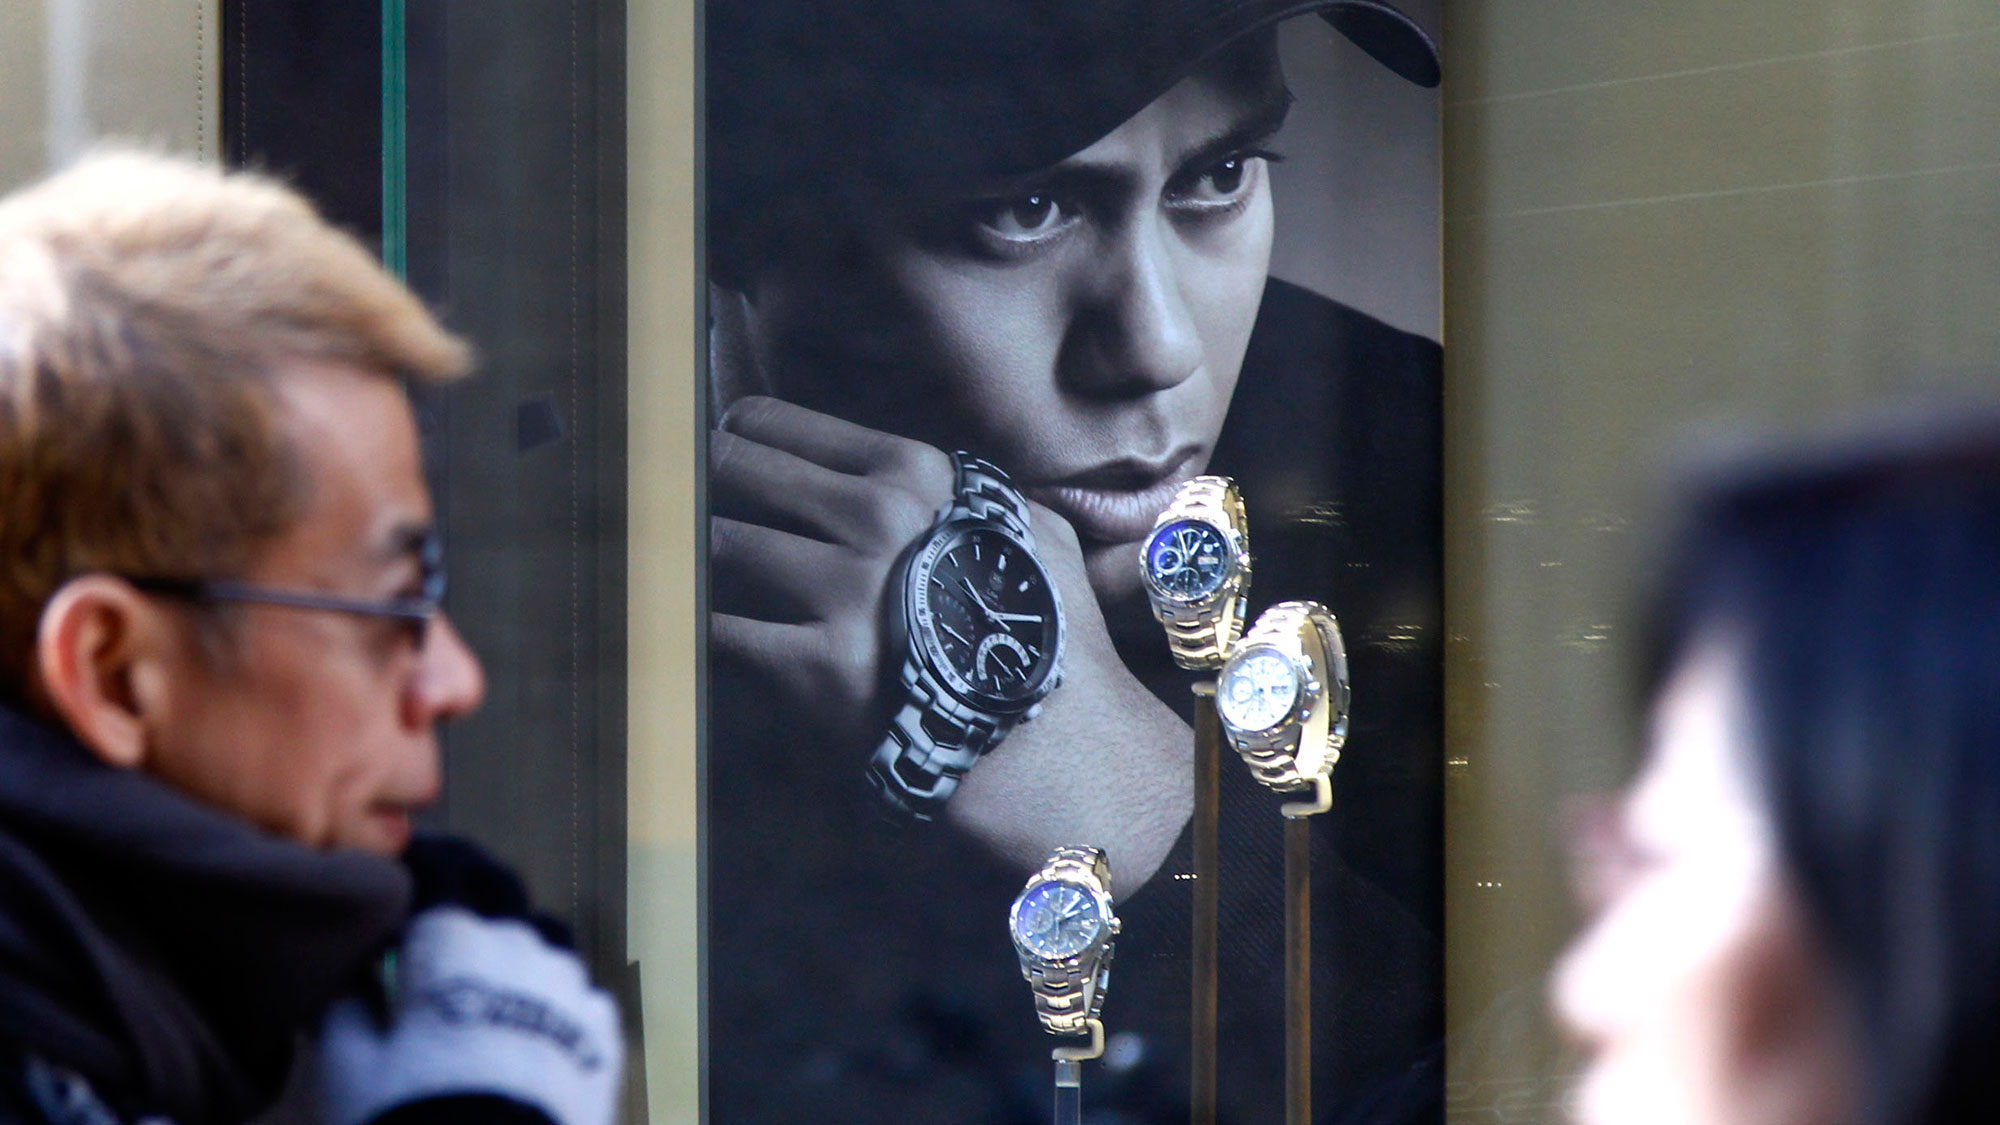 "FILE - This Dec. 15, 2009 file photo shows people walking by a Swiss watch shop displaying watches along with U.S. golfer Tiger Woods' portrait in Tokyo. Swiss watchmaker Tag Heuer says it's ended its 10-year commercial relationship with Tiger Woods and hopes he can ""overcome his difficulties."" (AP Photo/Koji Sasahara, File)"